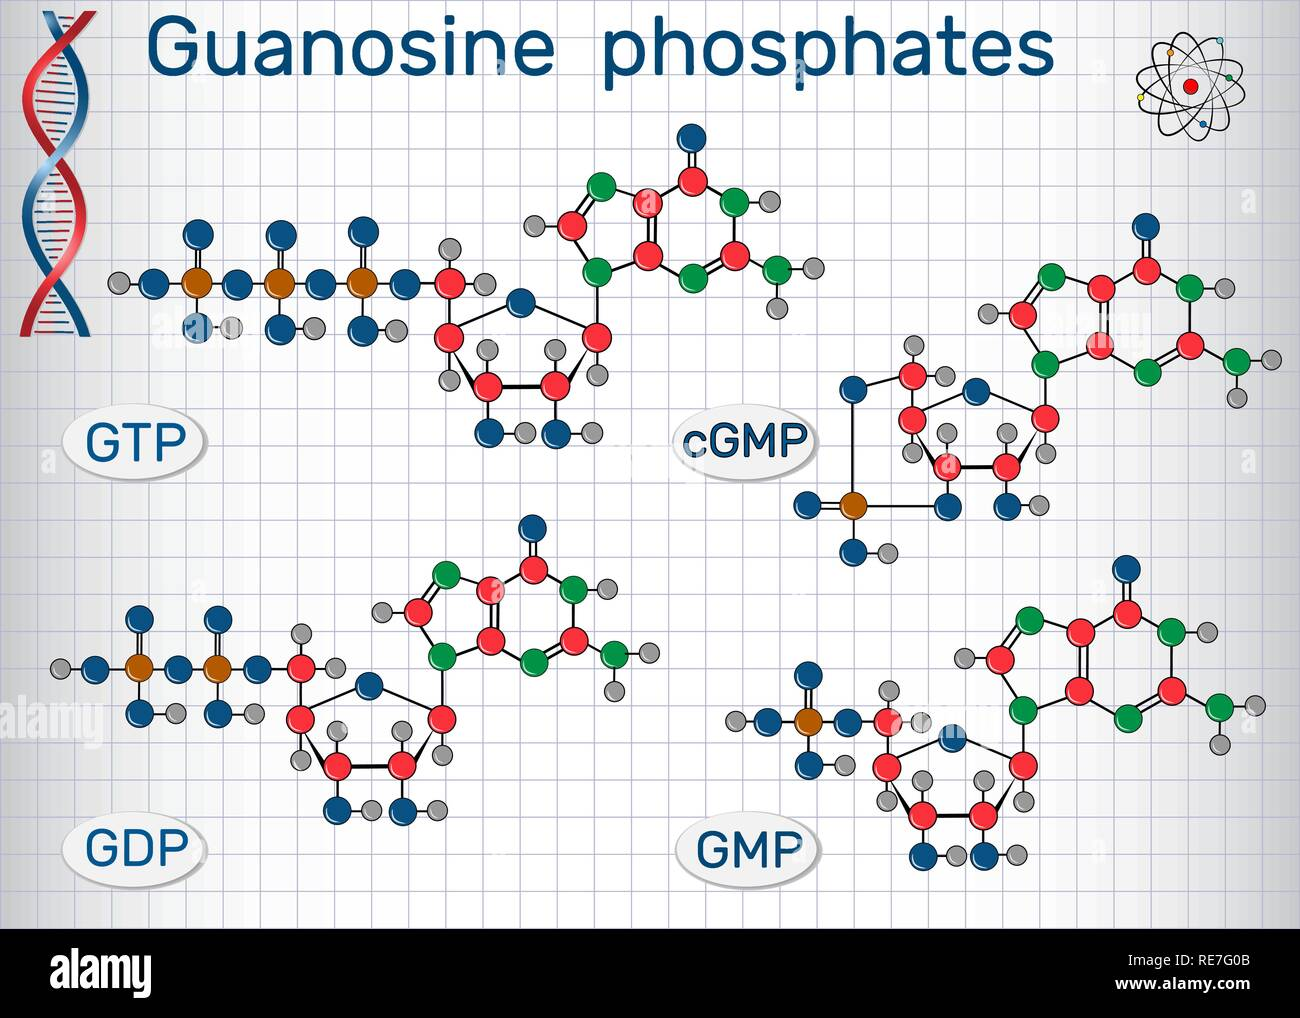 Guanosine phosphates (guanosine triphosphate, guanosine diphosphate, guanosine monophosphate, cyclic guanosine monophosphate). Sheet of paper in a cag Stock Vector